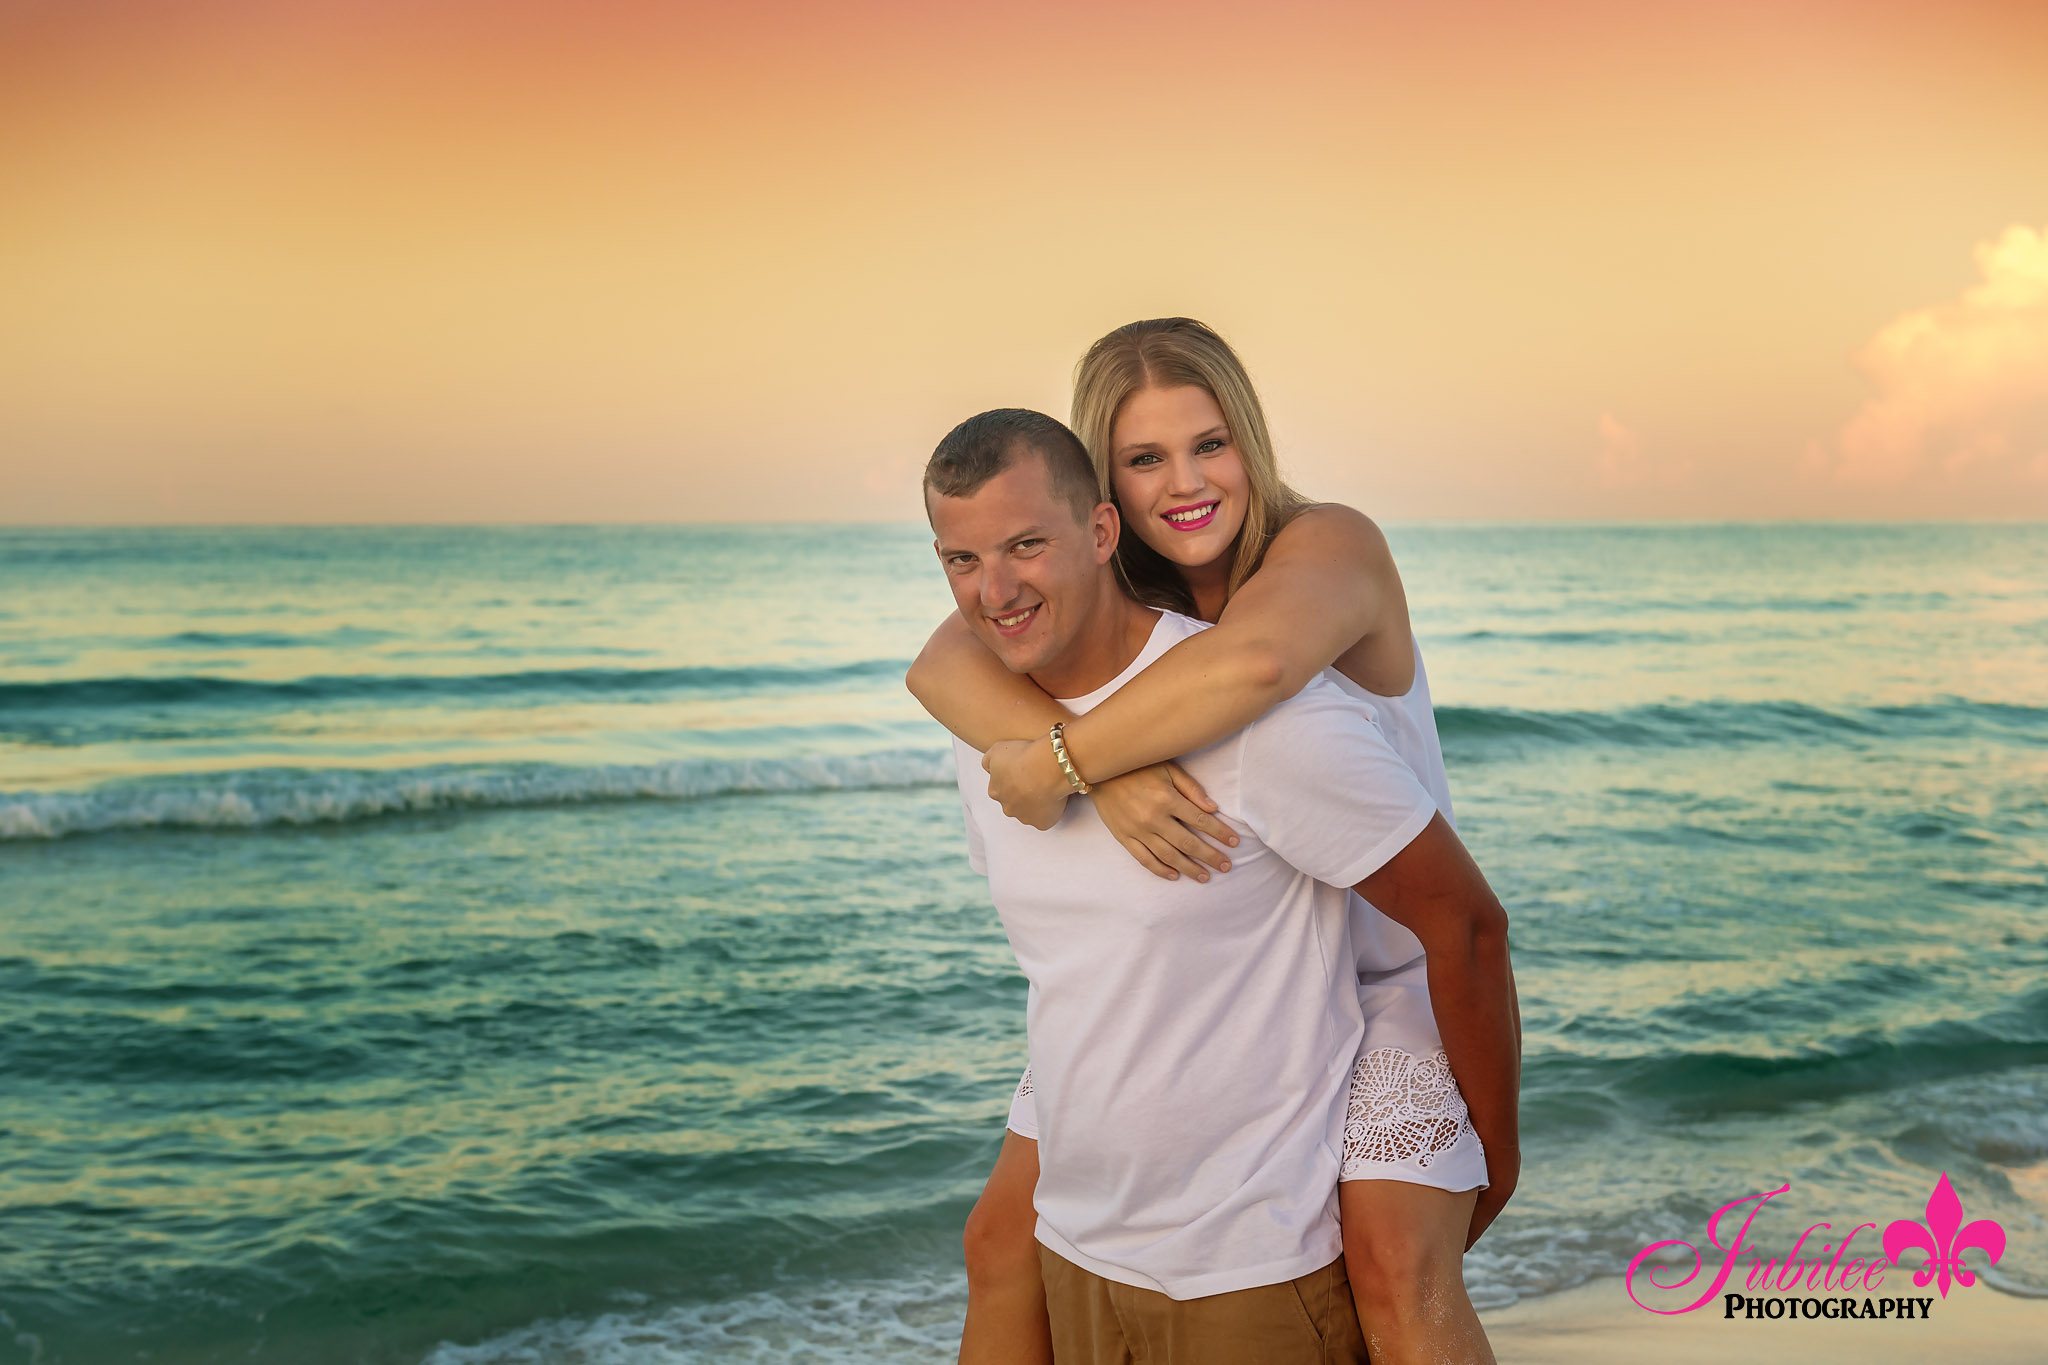 Destin_Sunrise_Photographer_0865